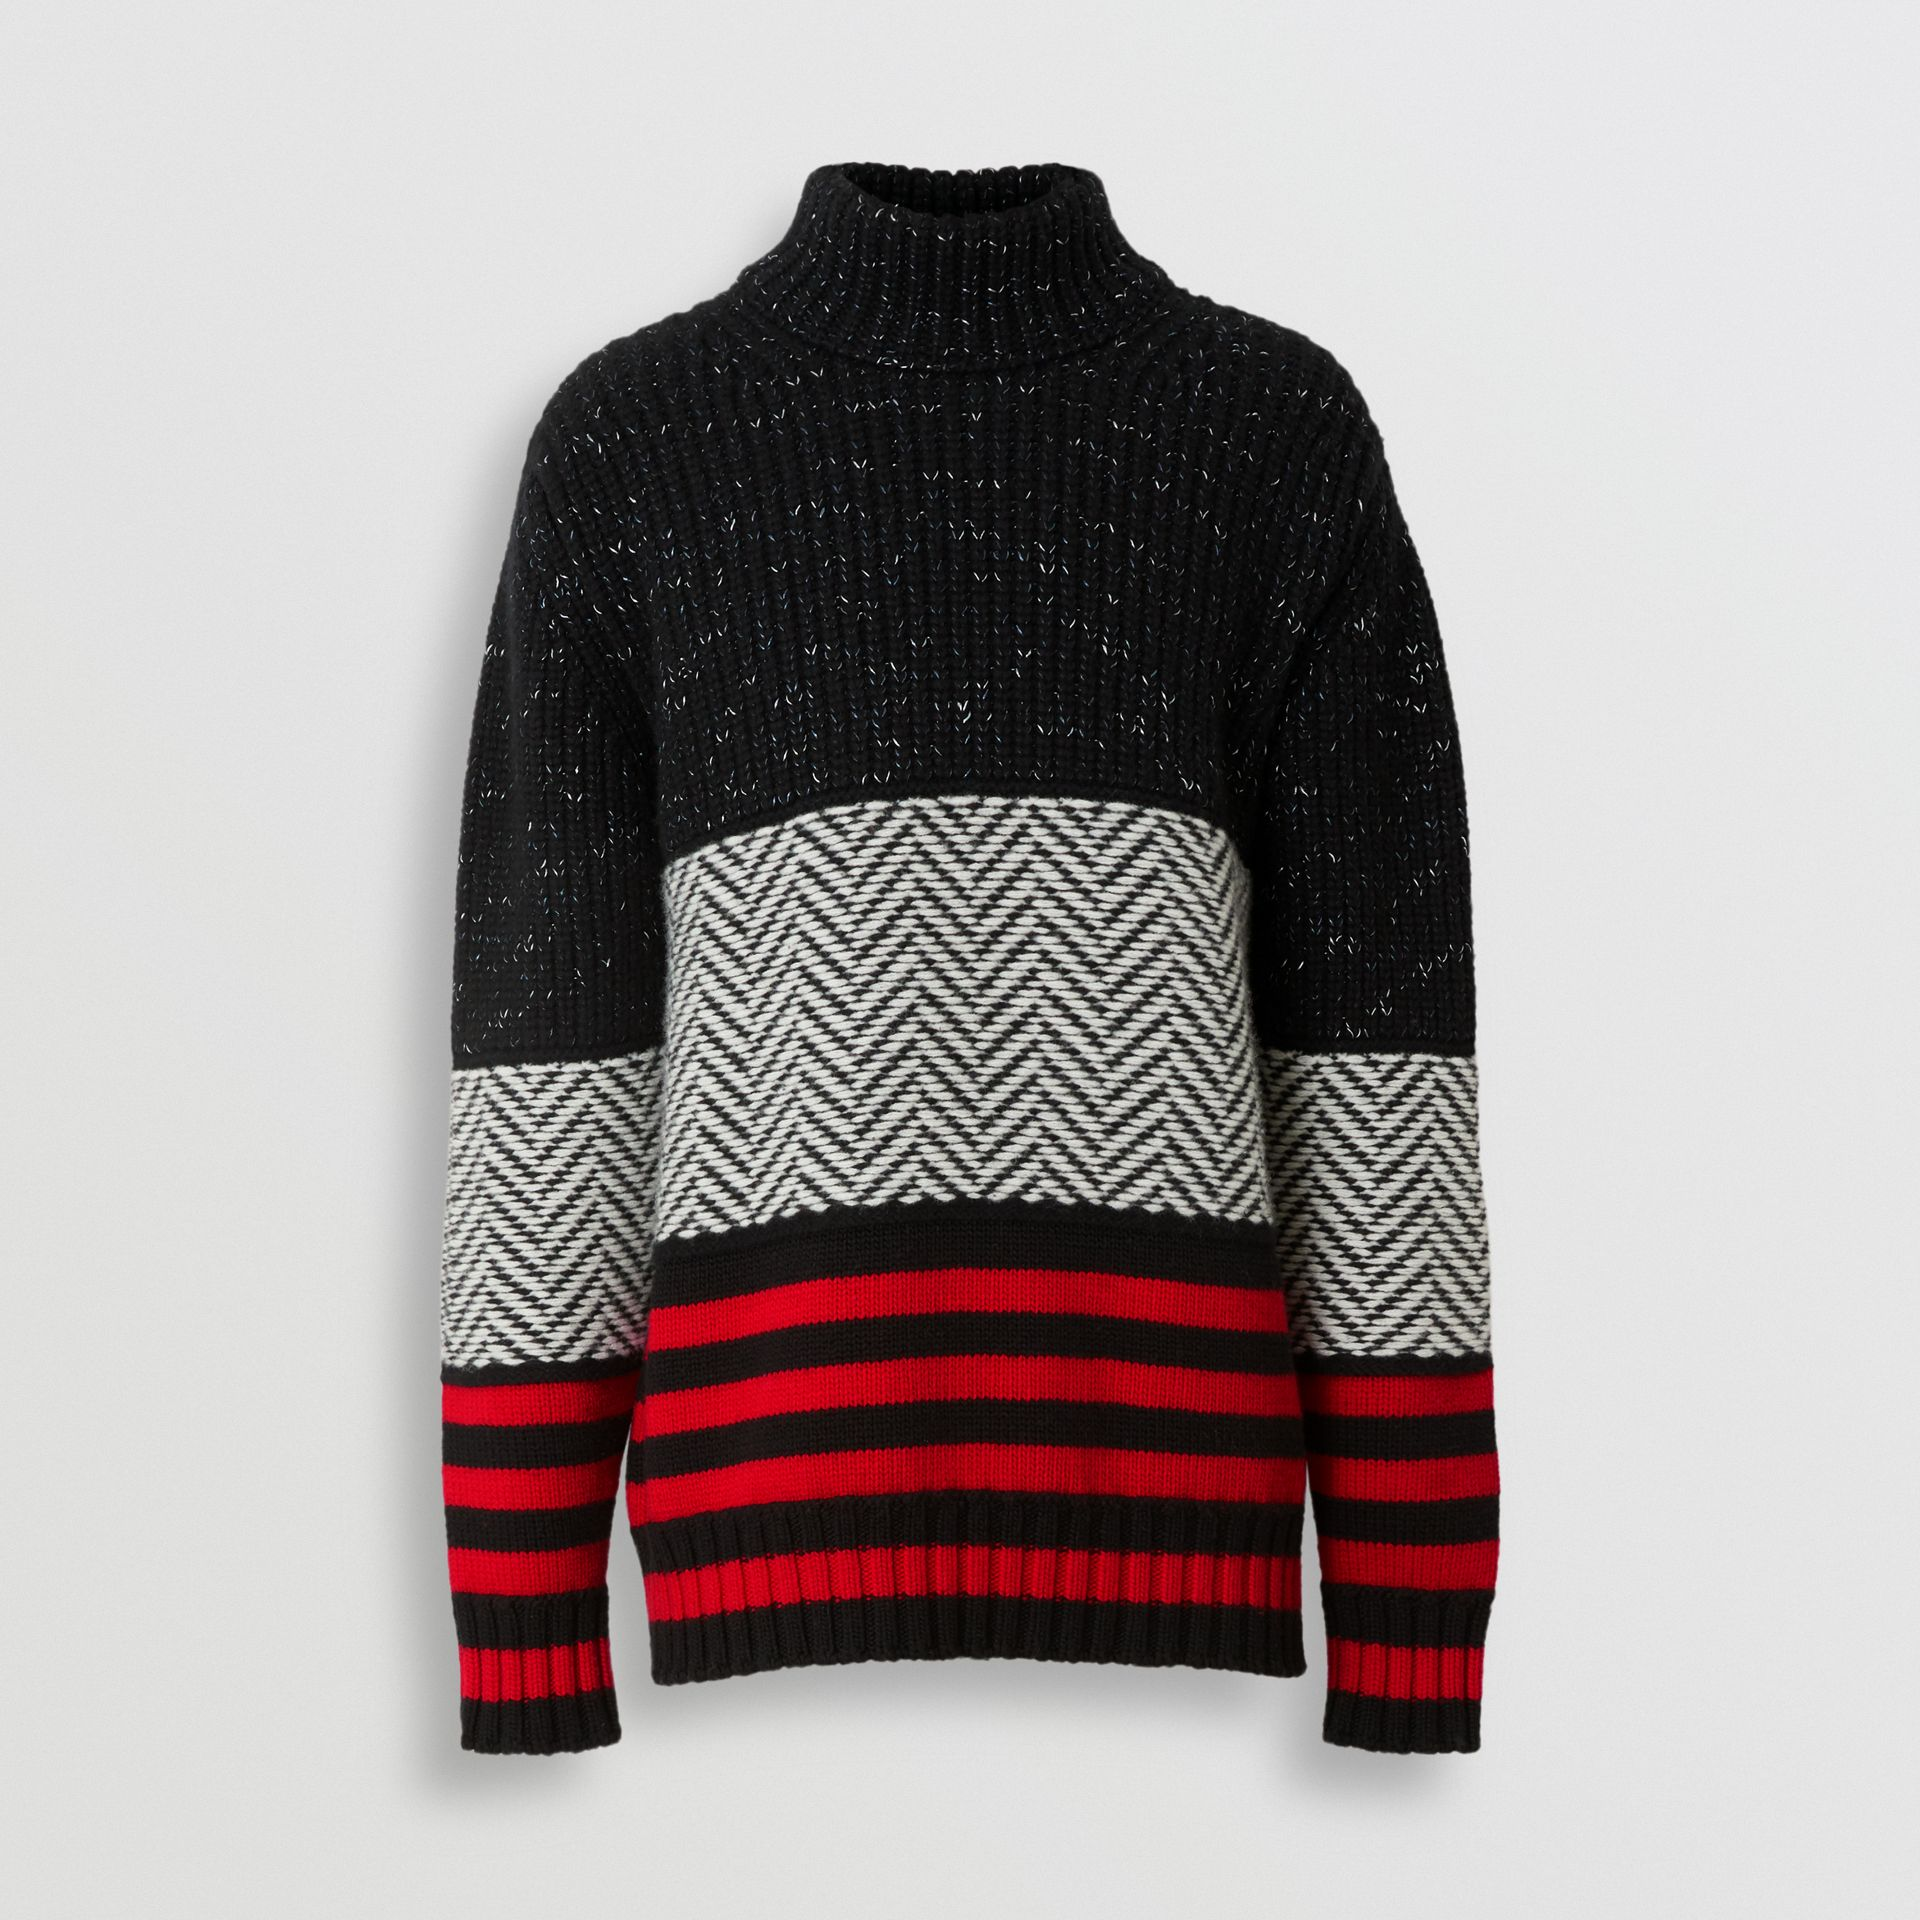 Contrast Knit Wool Cashmere Blend Sweater in Black - Men | Burberry - gallery image 3